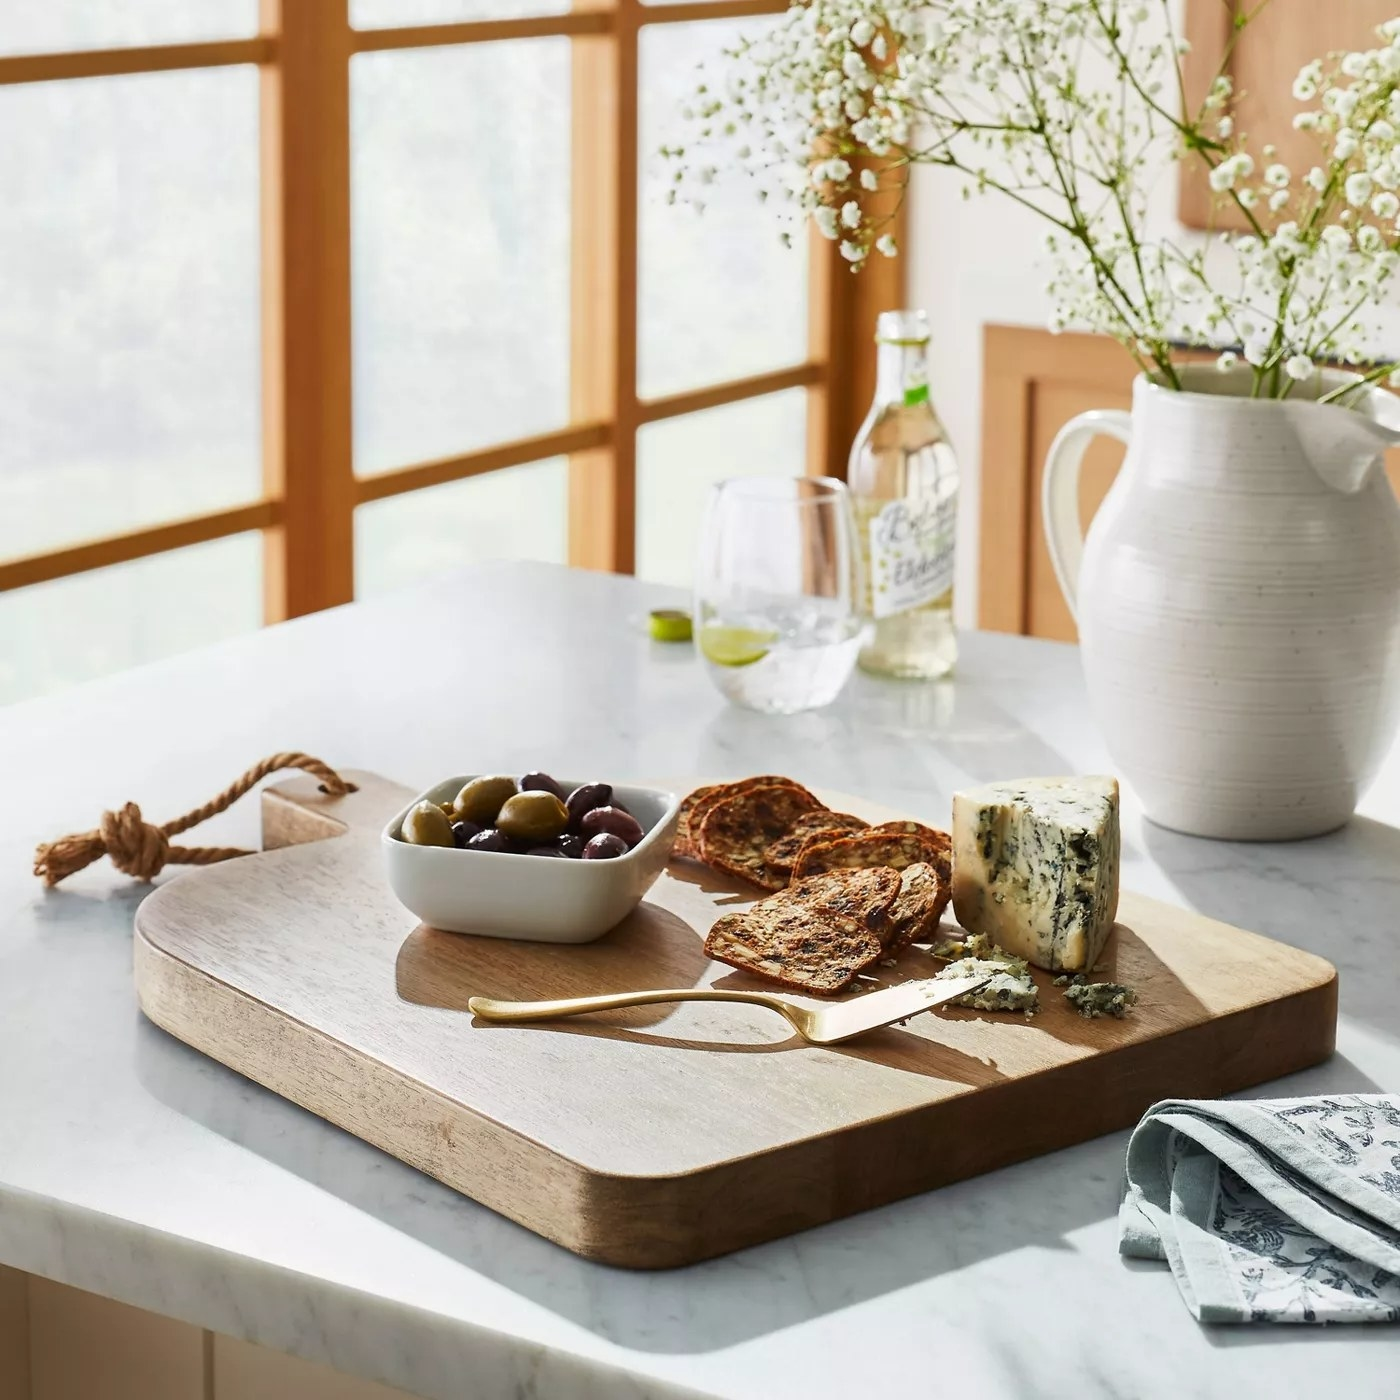 The board placed on a dining table with hors d'oeuvres on top